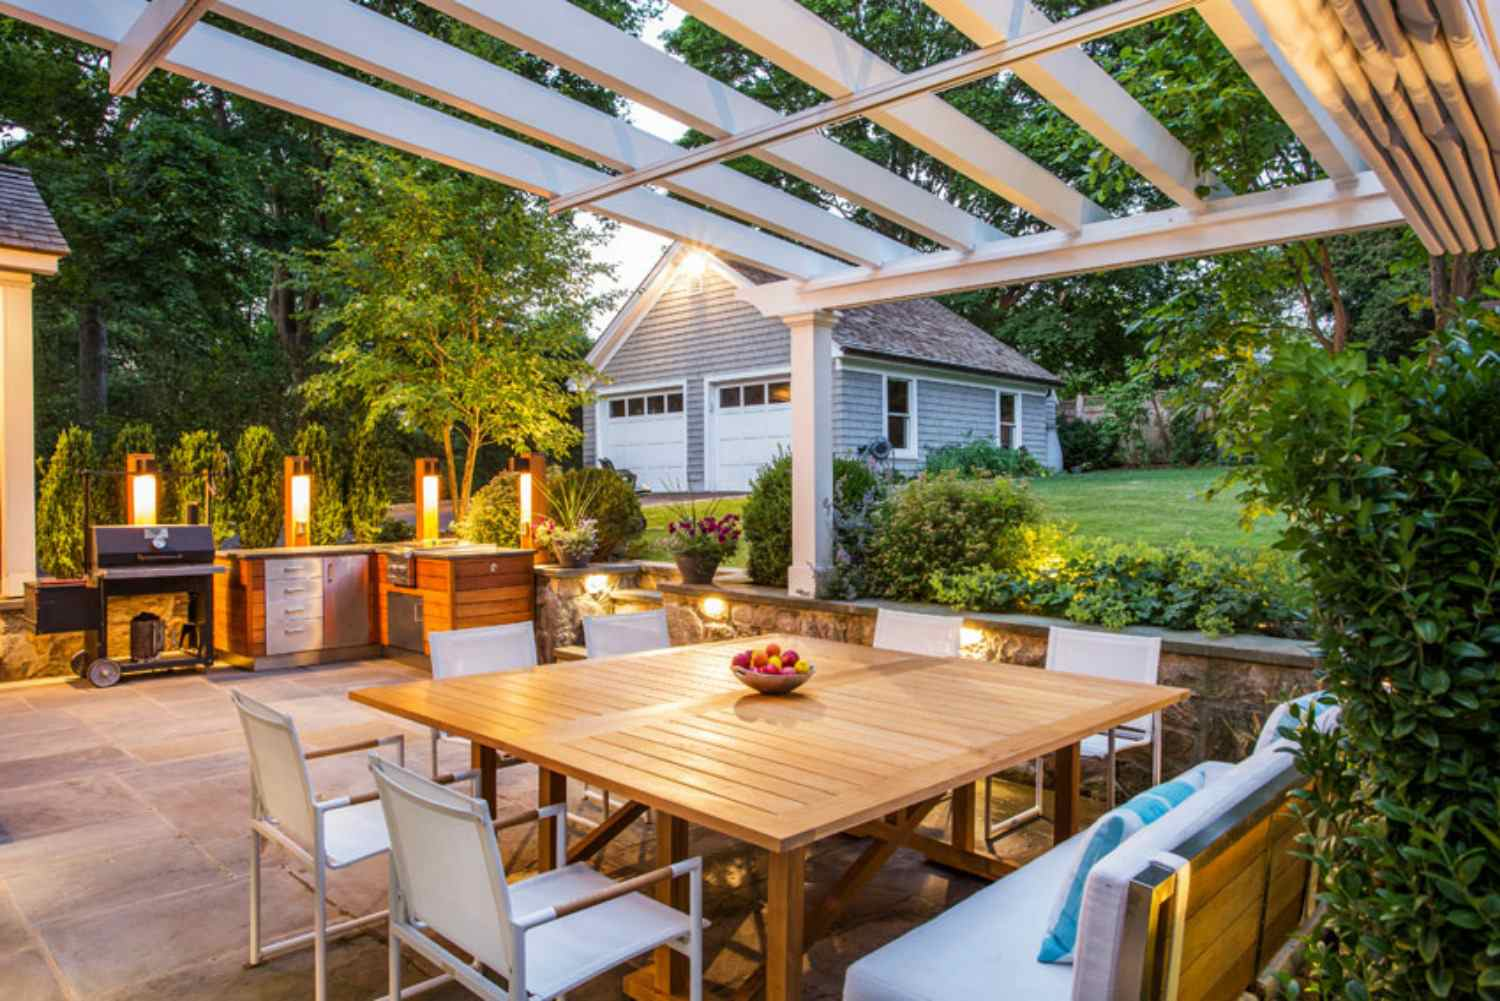 Pergola over an outdoor patio with dining area